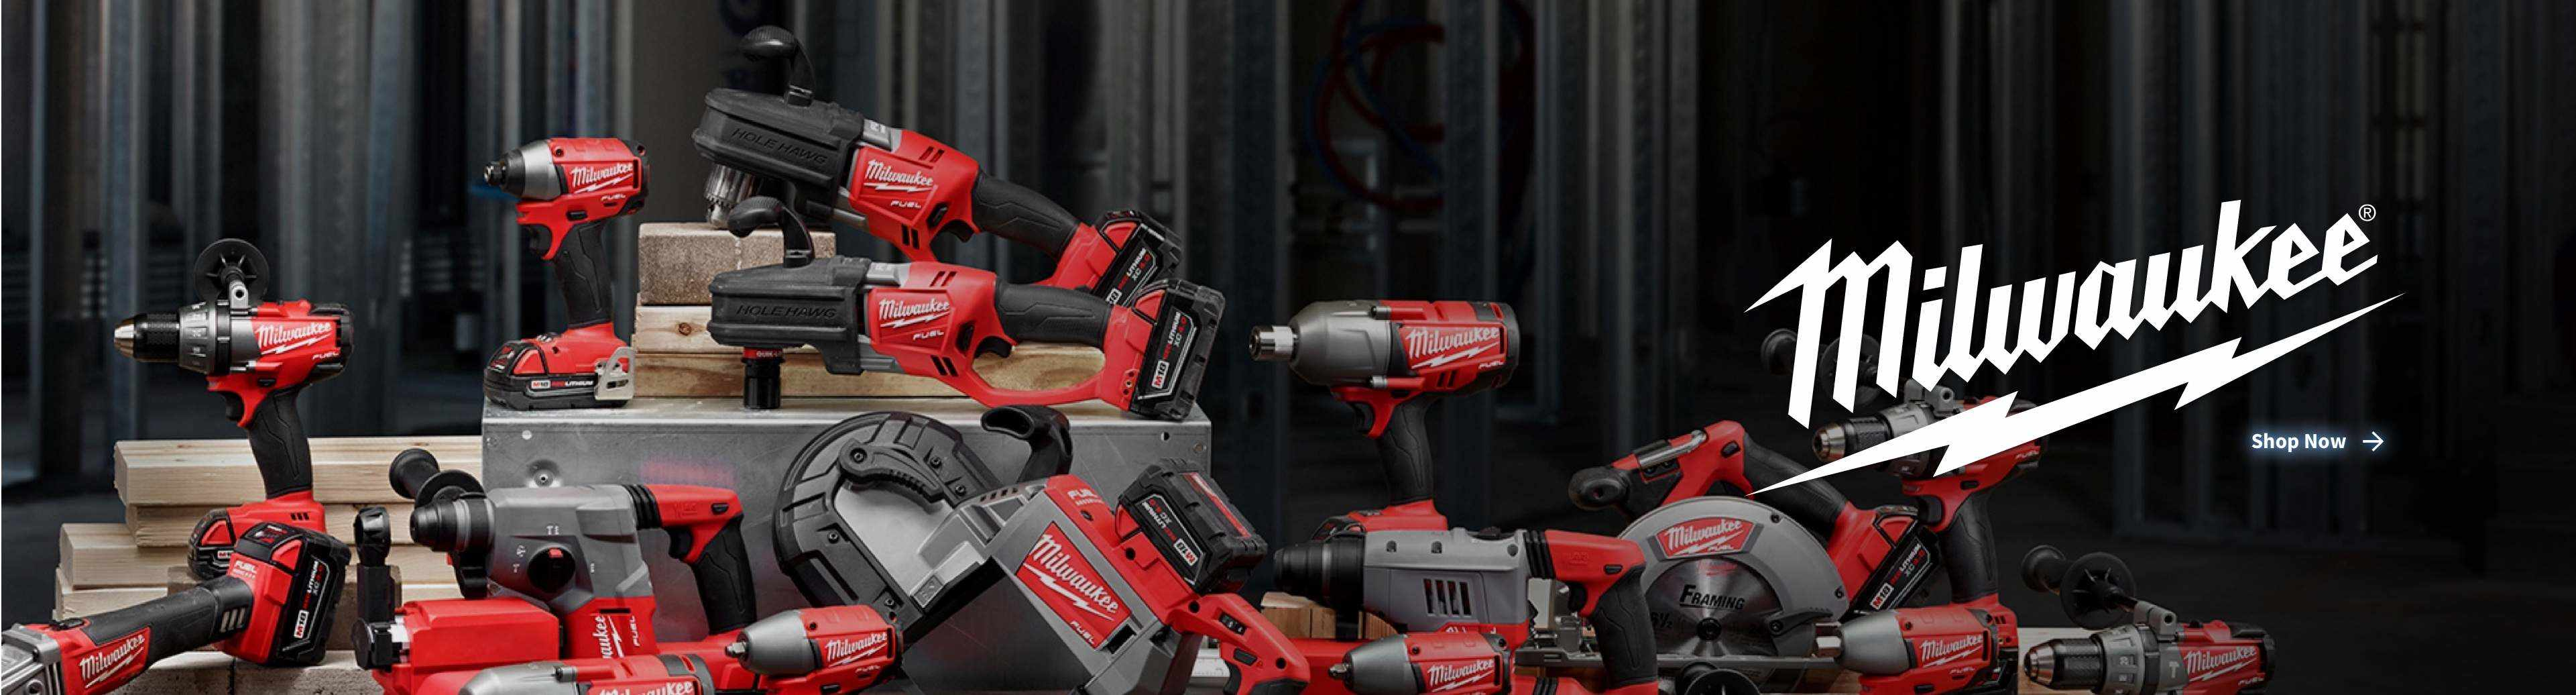 Shop Milwaukee power tools from Bliffert Lumber